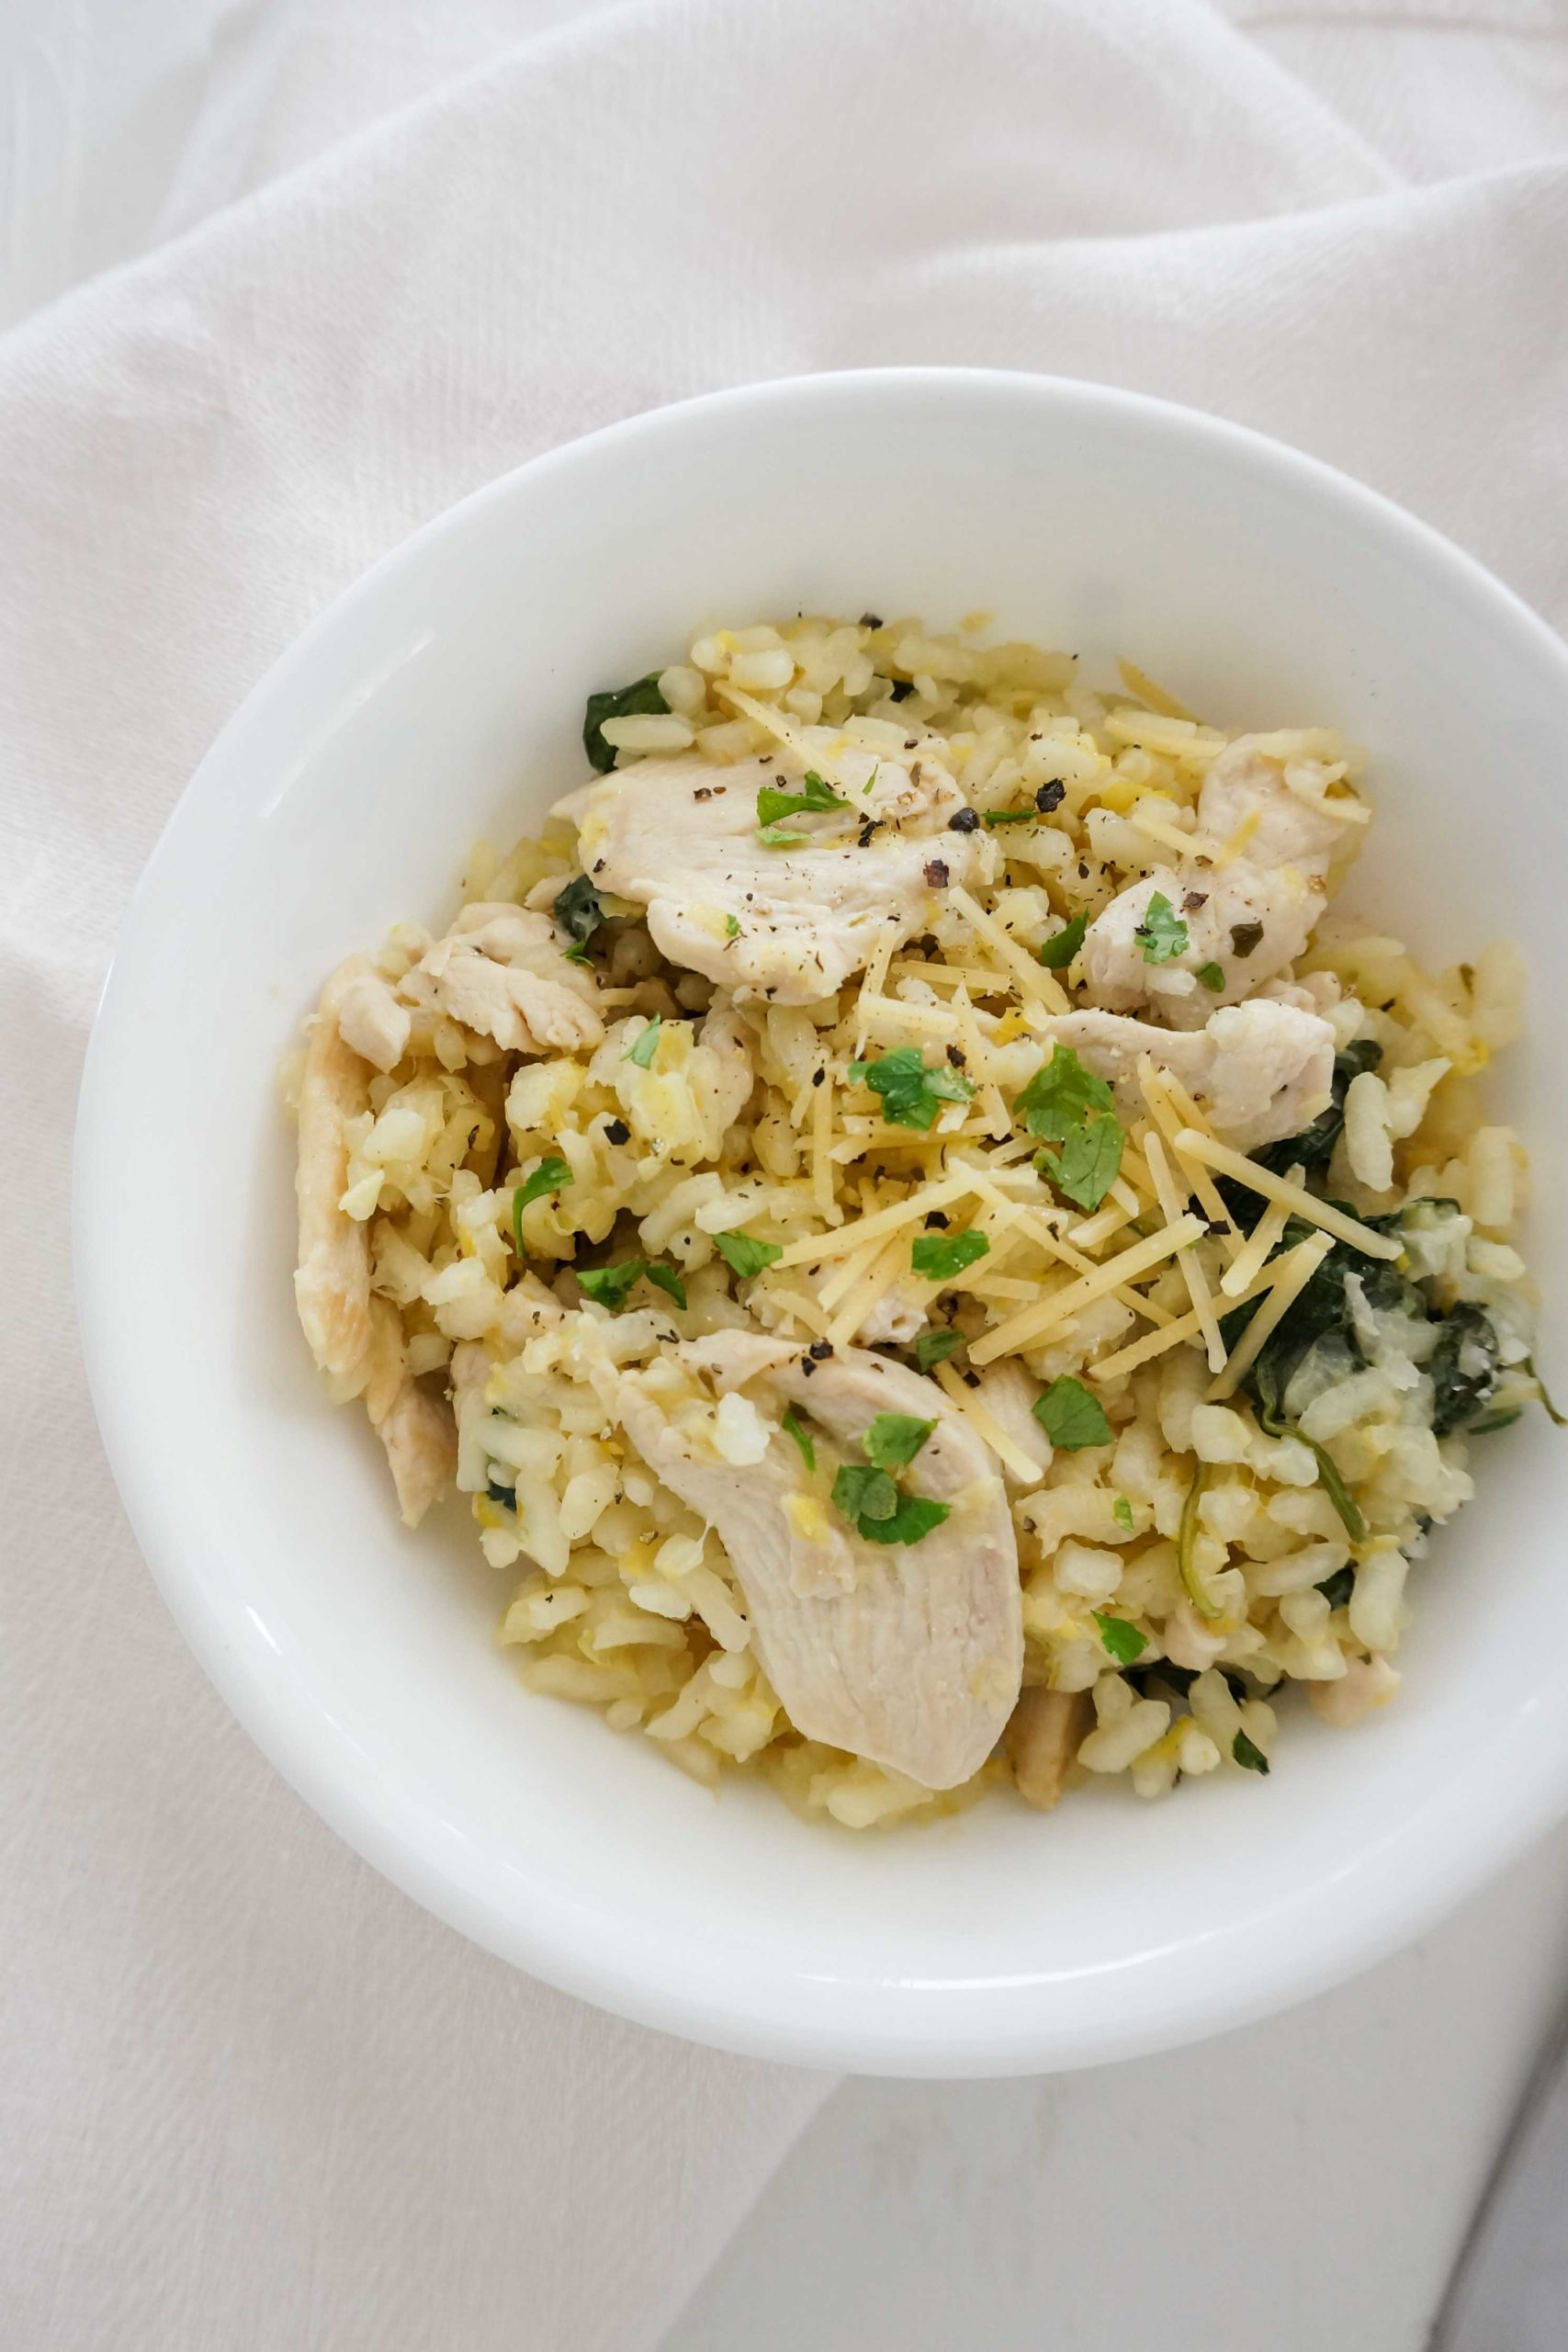 a bowl of chicken and leek risotto topped with parmesan cheese and chopped fresh parsley leaves